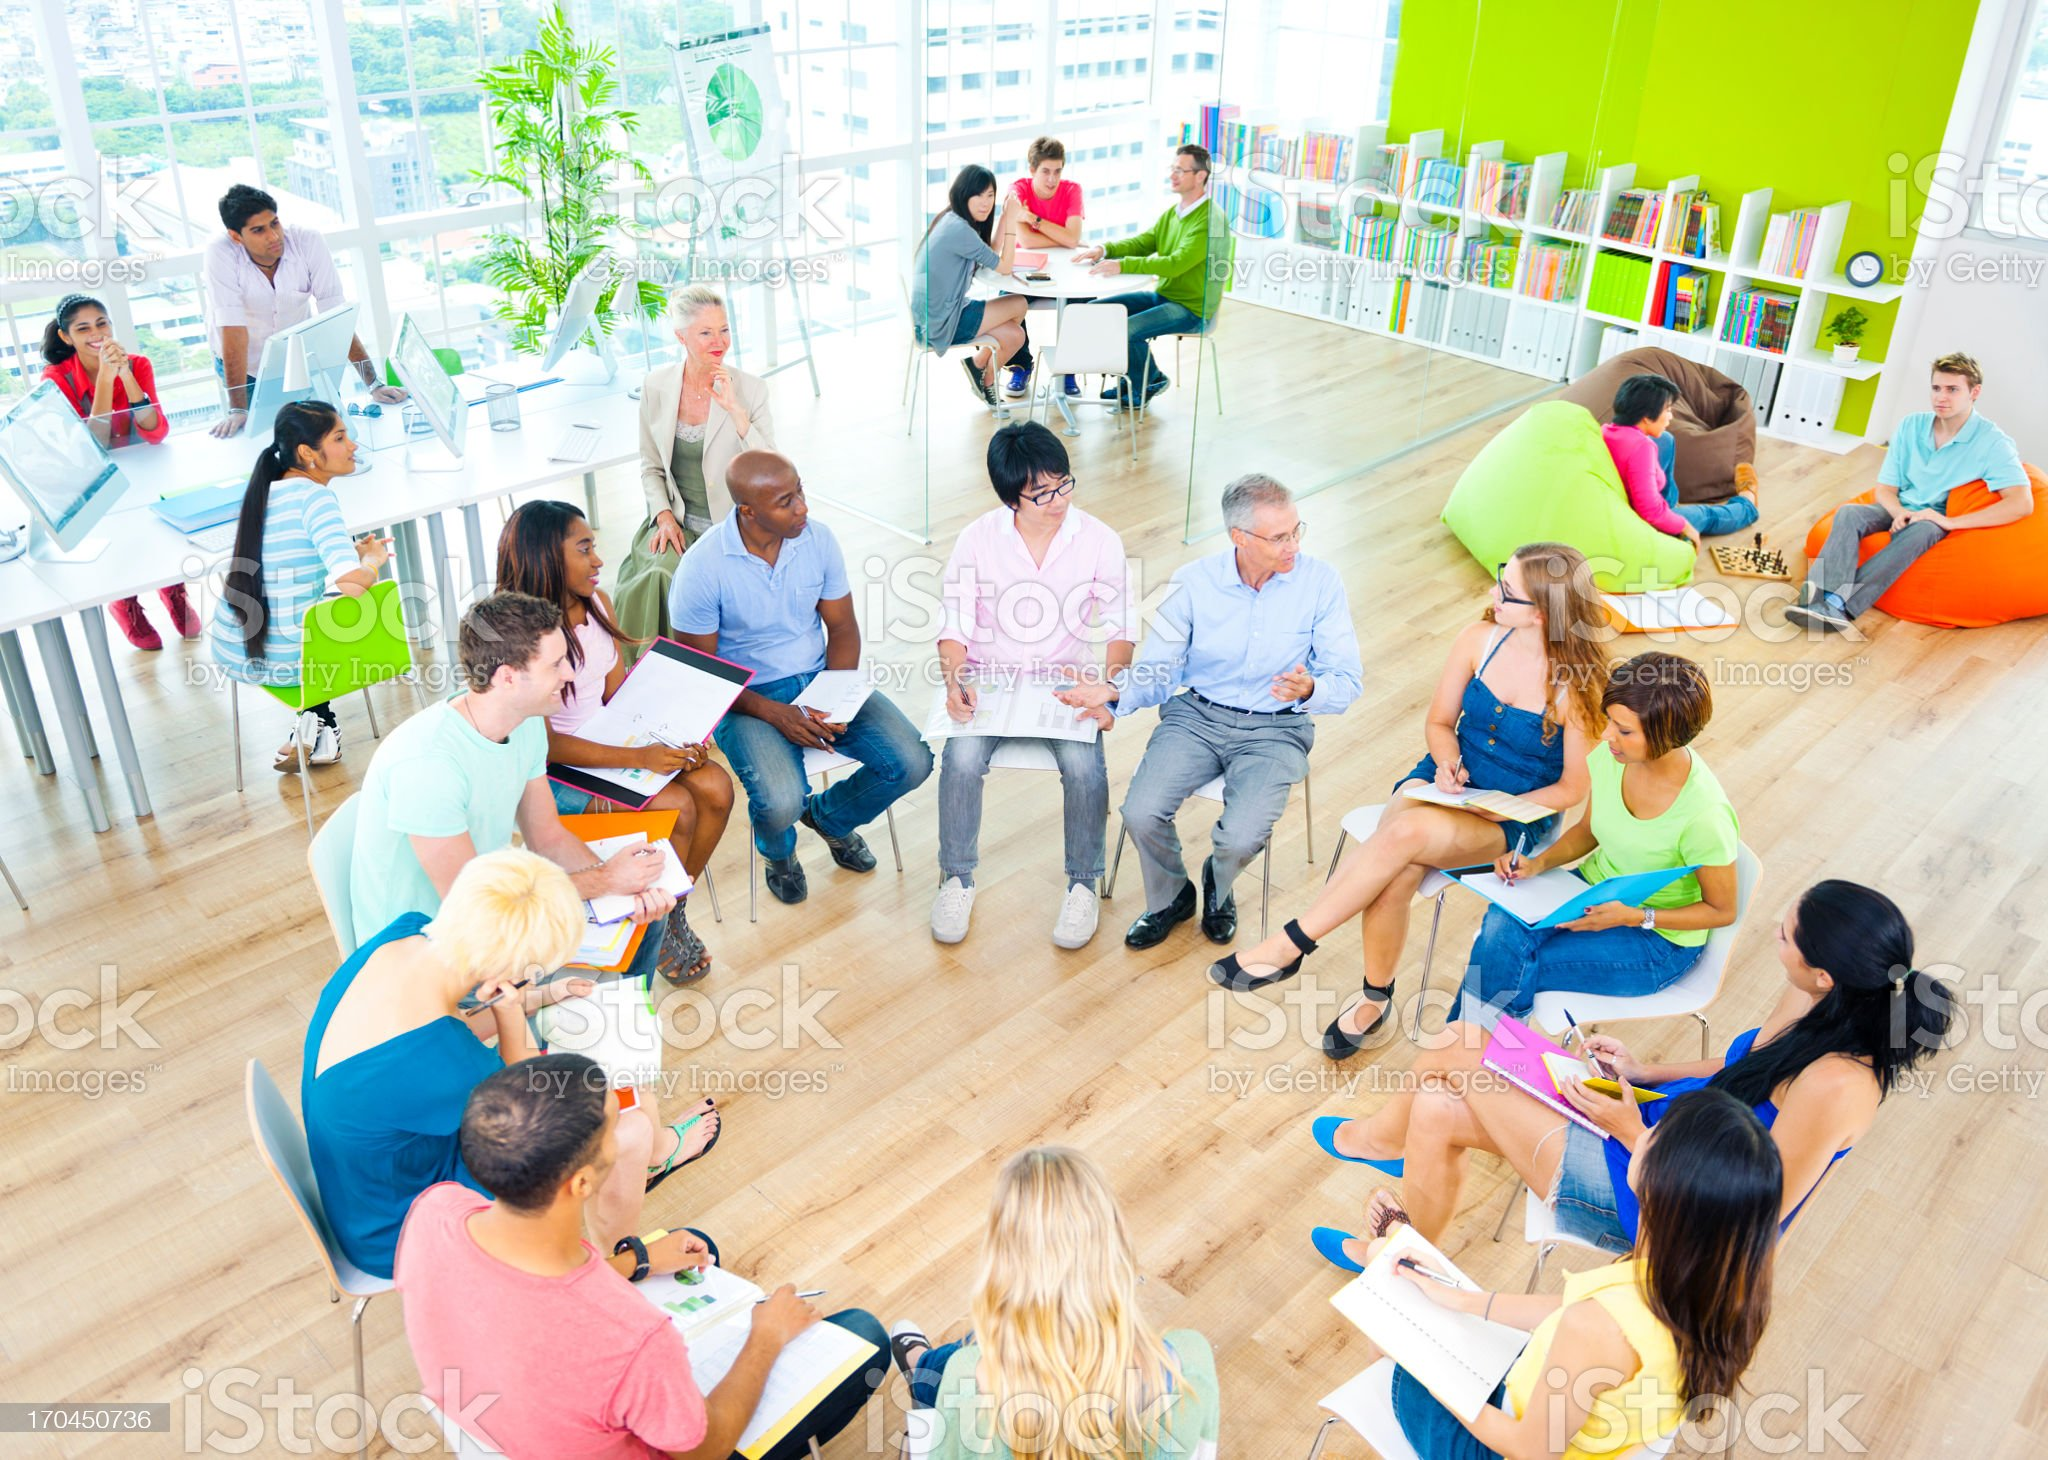 Group of students meeting in an informal circle royalty-free stock photo